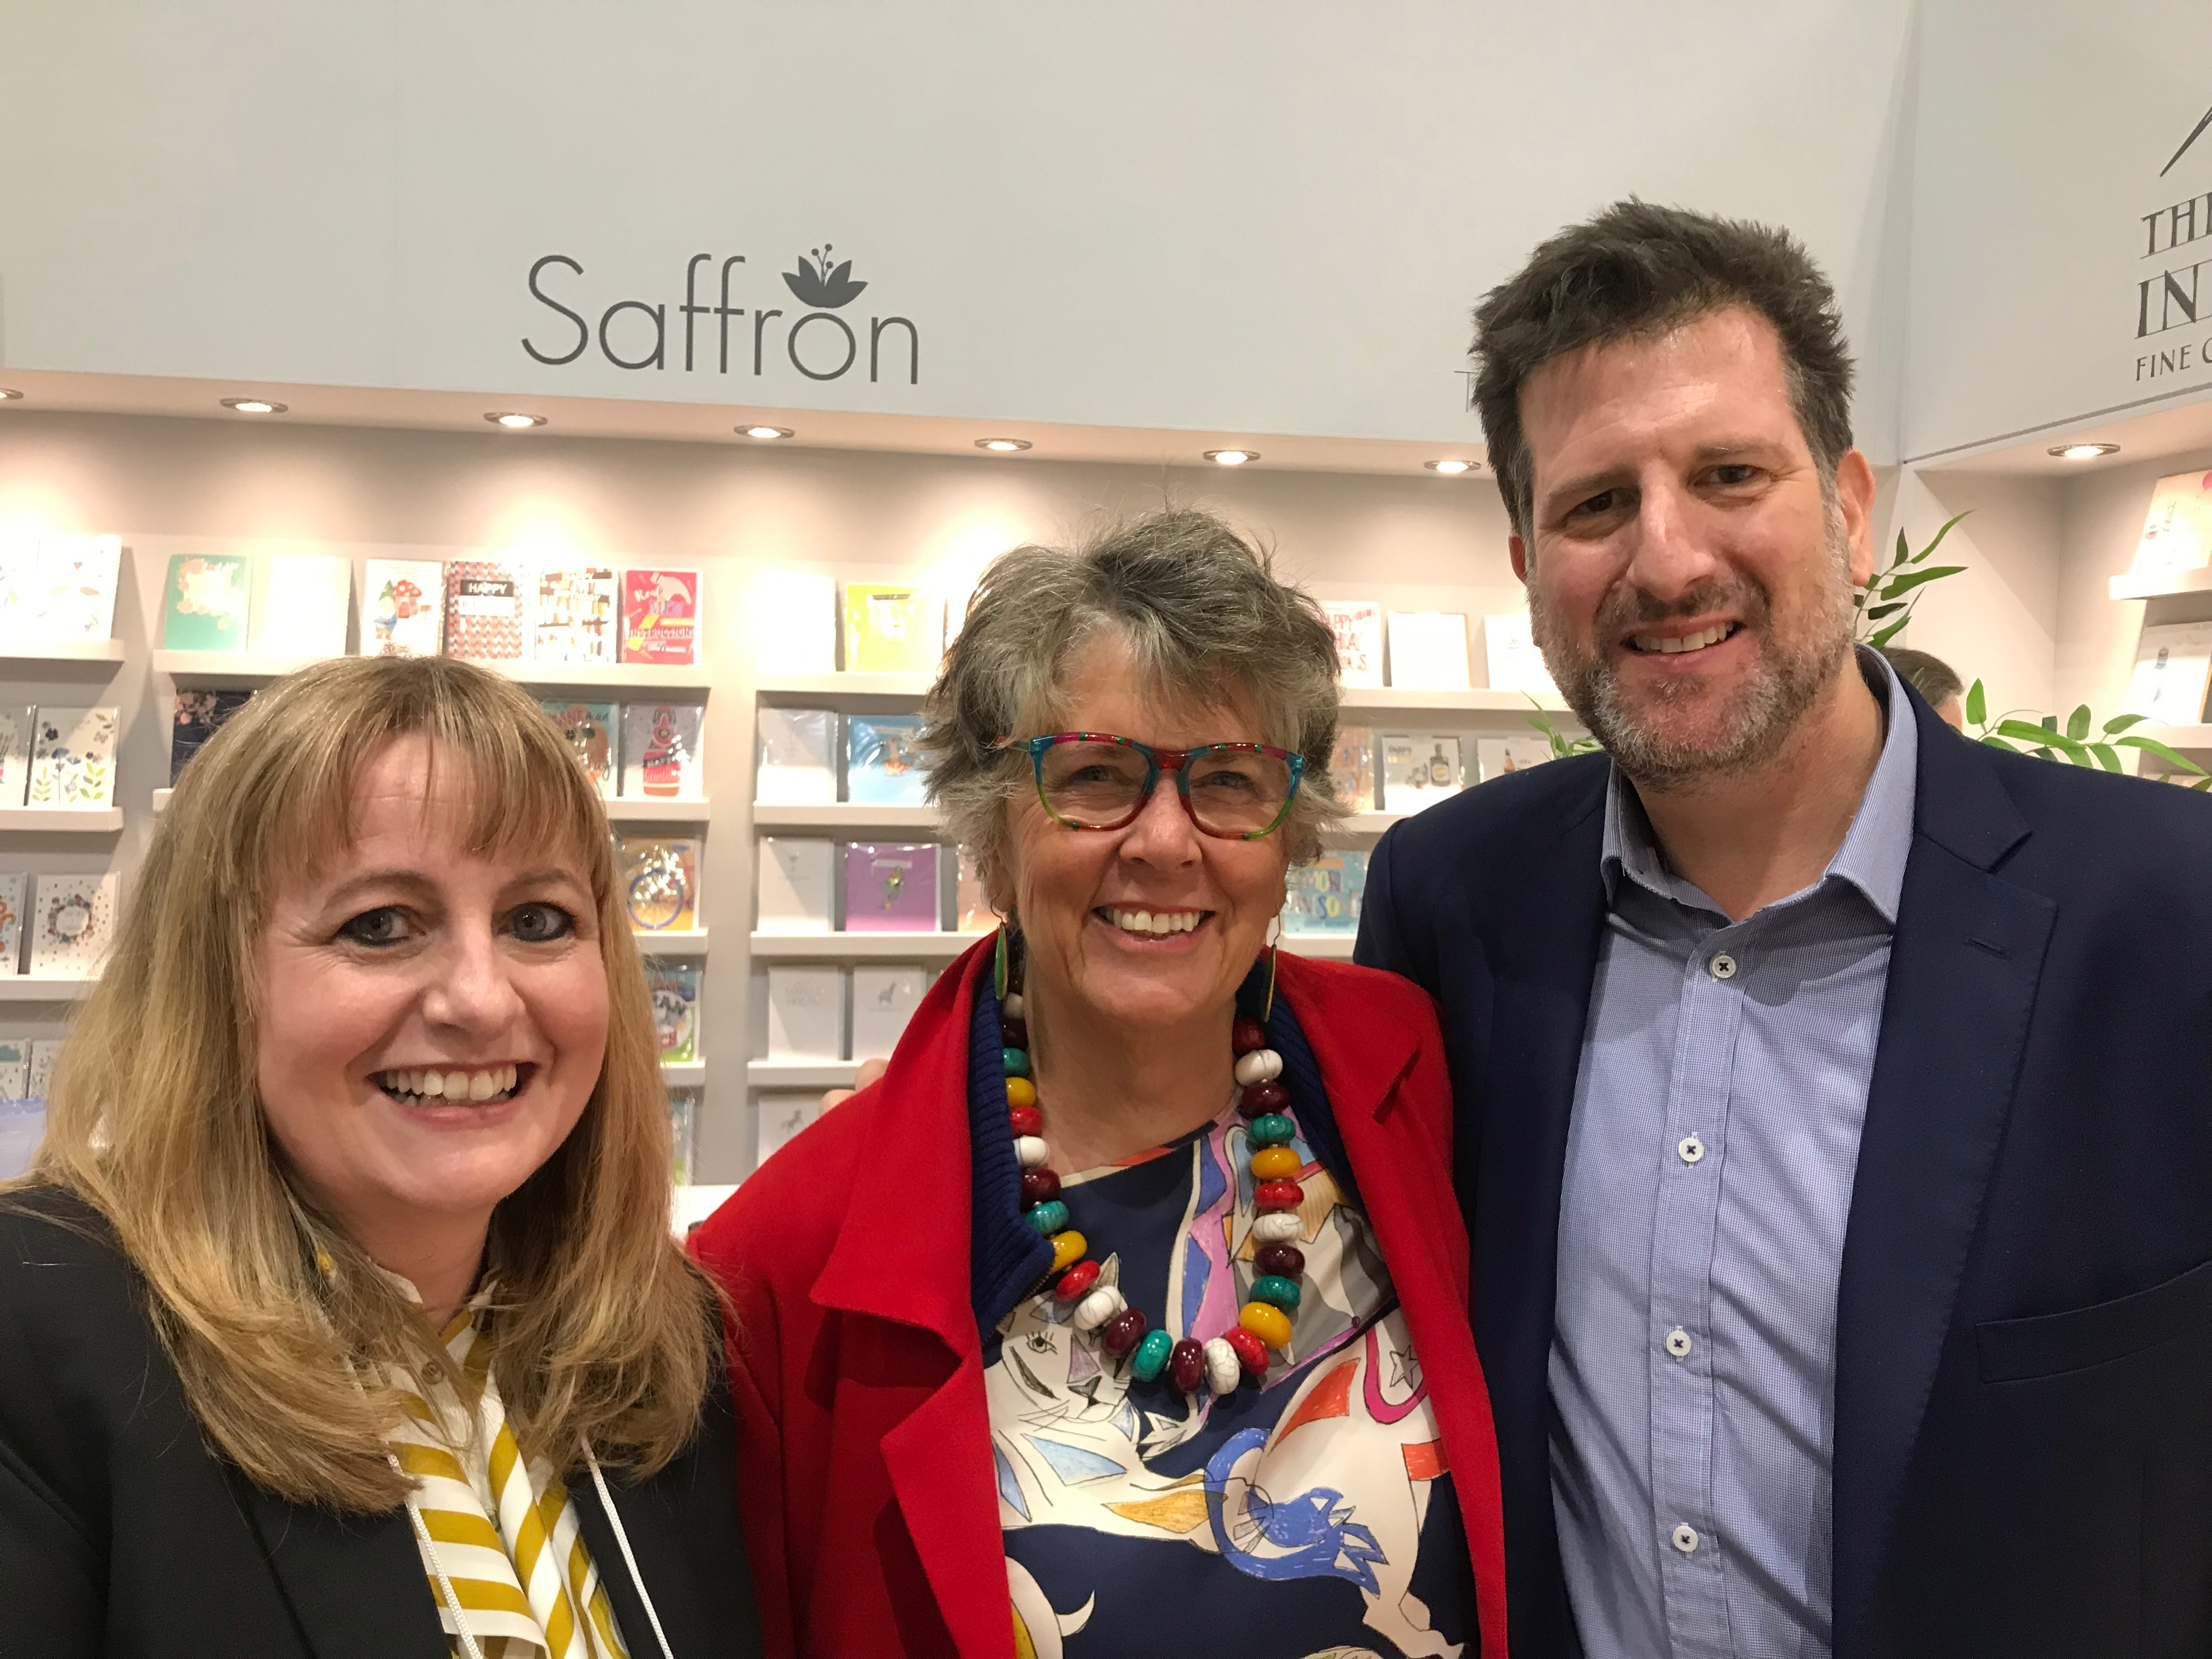 Above: Prue Leith (centre) with Ling's ceo David Byk and Clare Twigger, the publisher's head of creative.